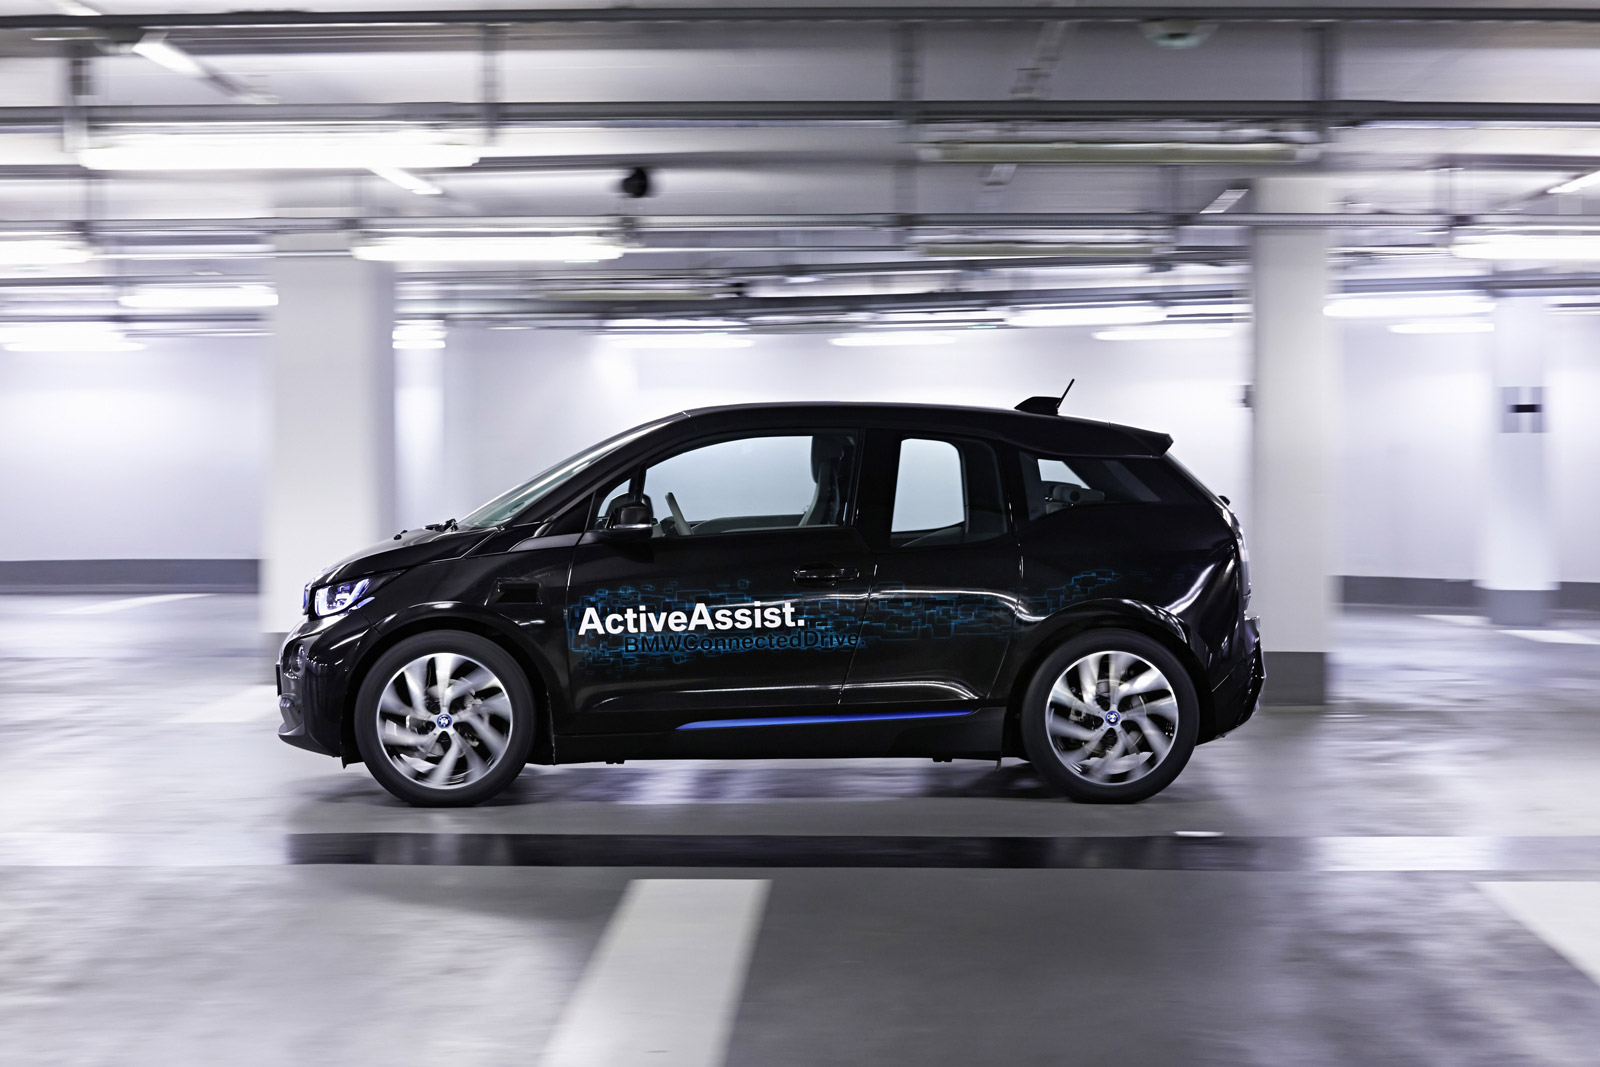 Wonderful BMW To Present SelfParking Technology At 2015 CES